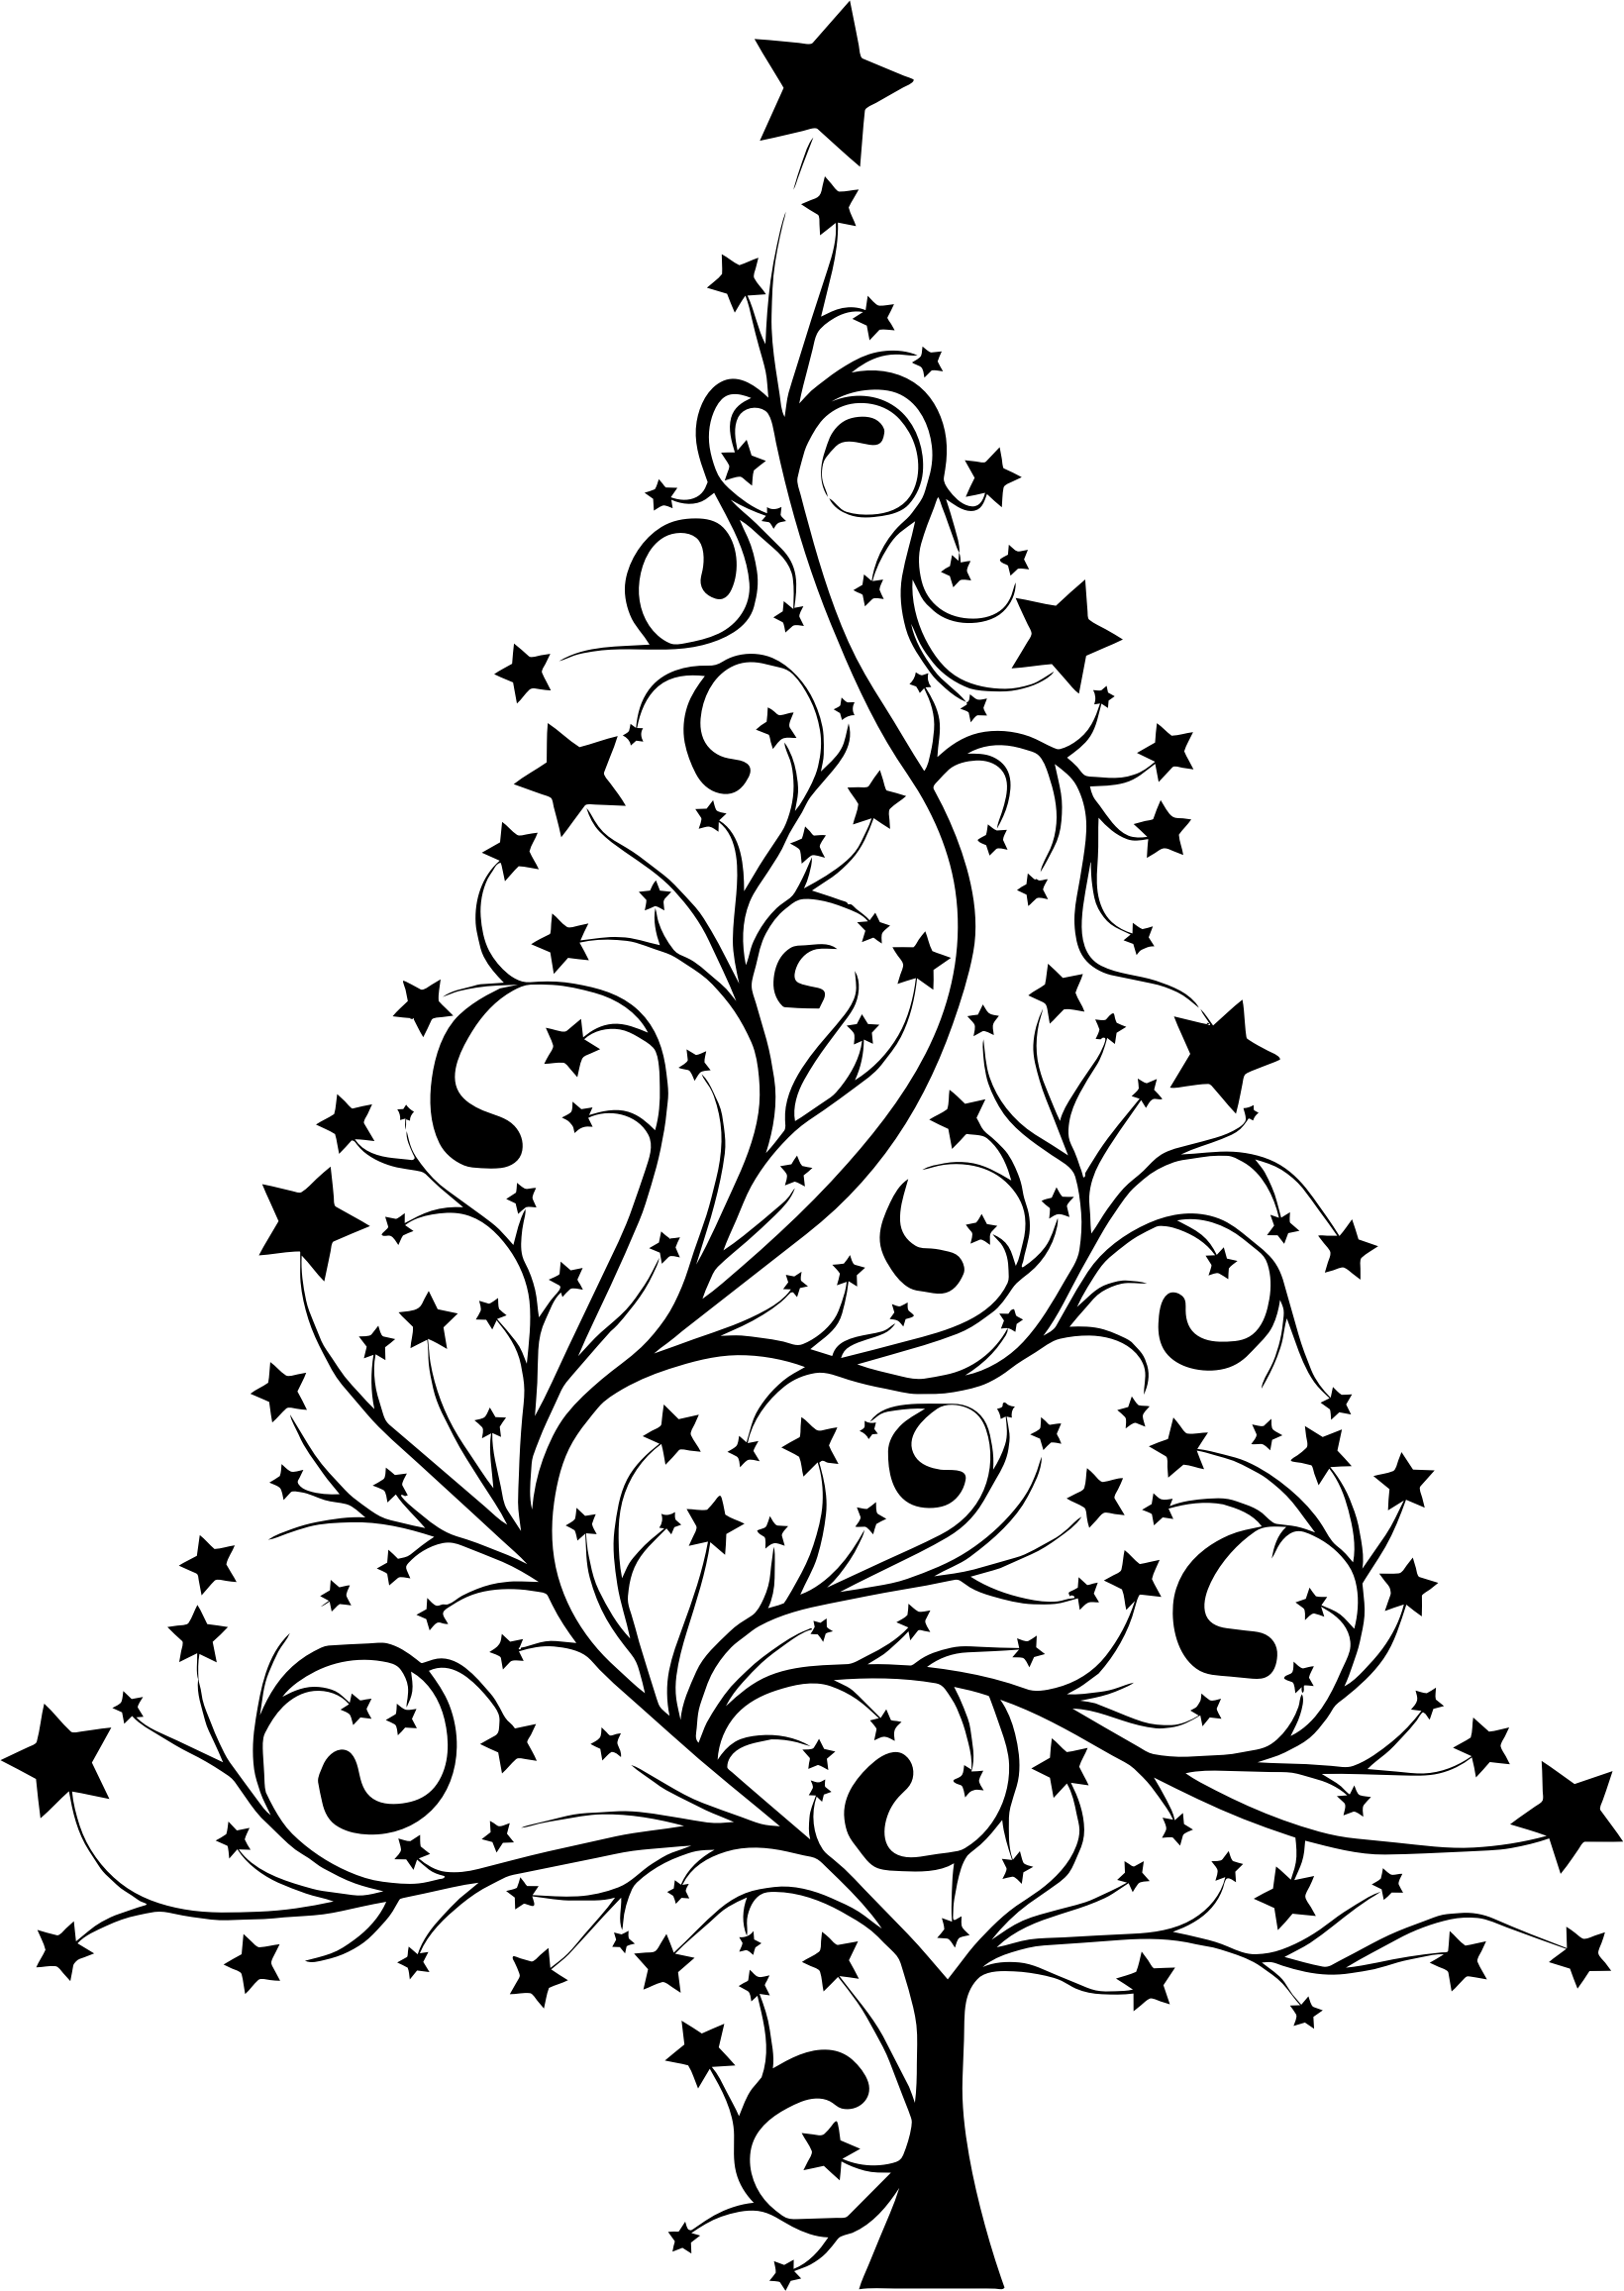 Free Christmas Silhouette Cliparts Download Free Clip Art